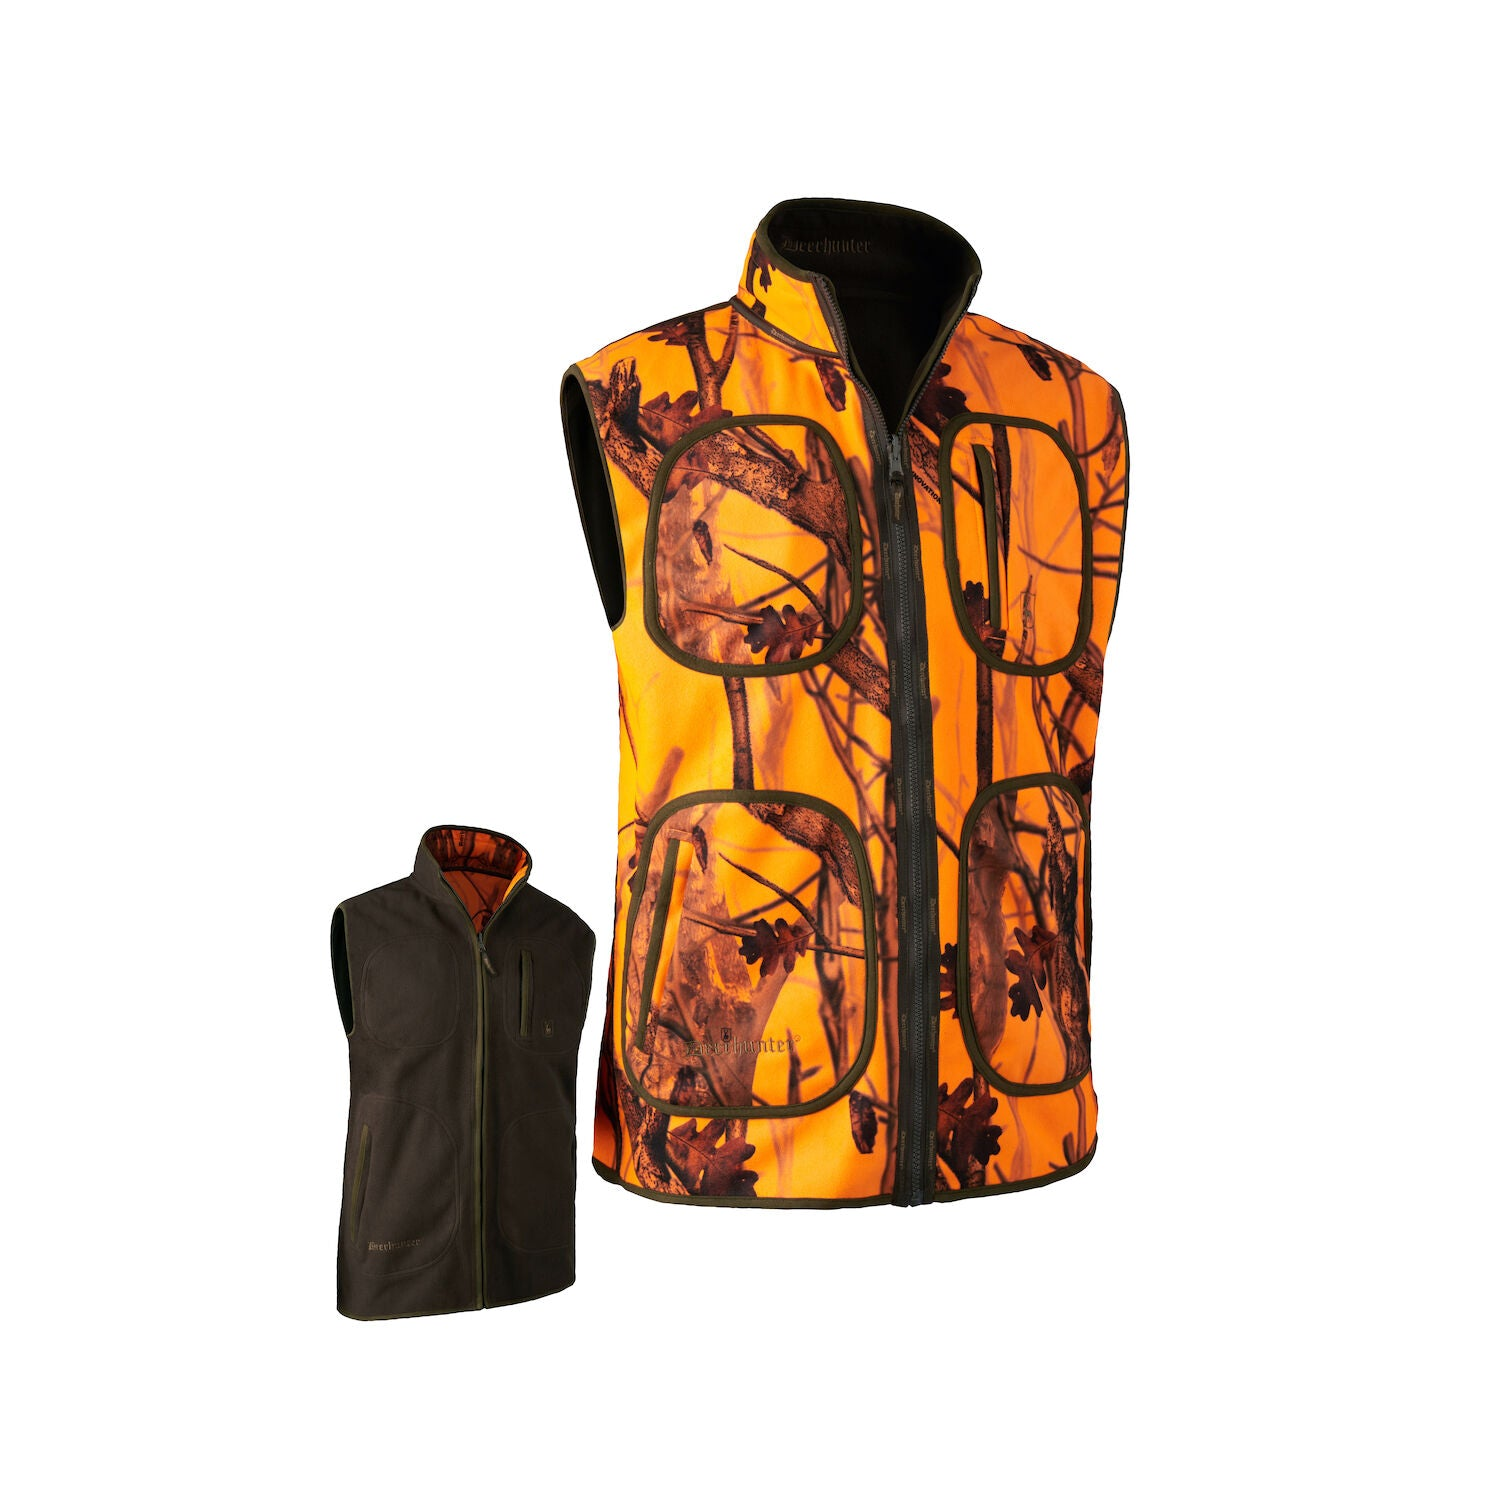 Deerhunter Gamekeeper Bonded Fleece Vest